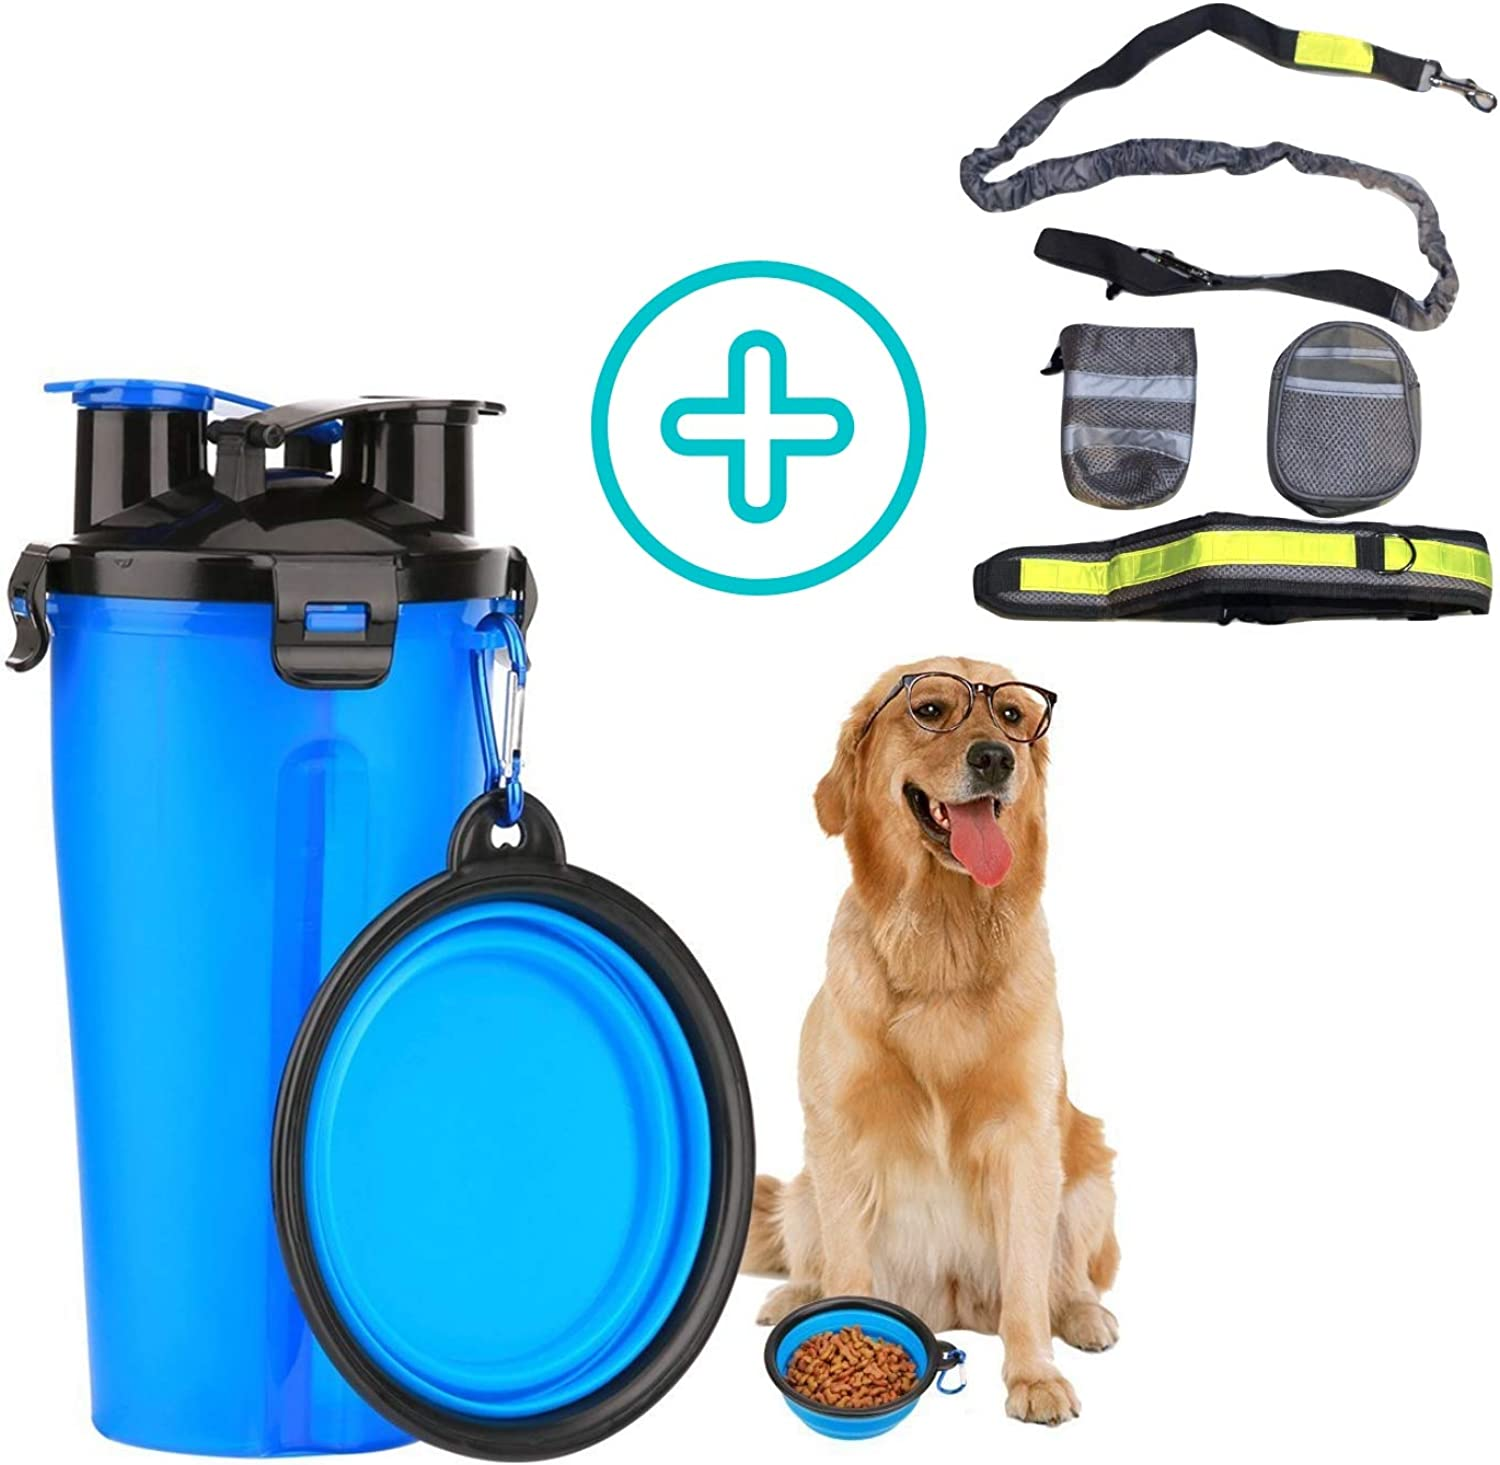 Securepup Dog Water and Food Container with Collapsible Bowl and Hands Free Leash for Small Dogs for Travel Walking and Hiking Portable Dual Chamber Bottle